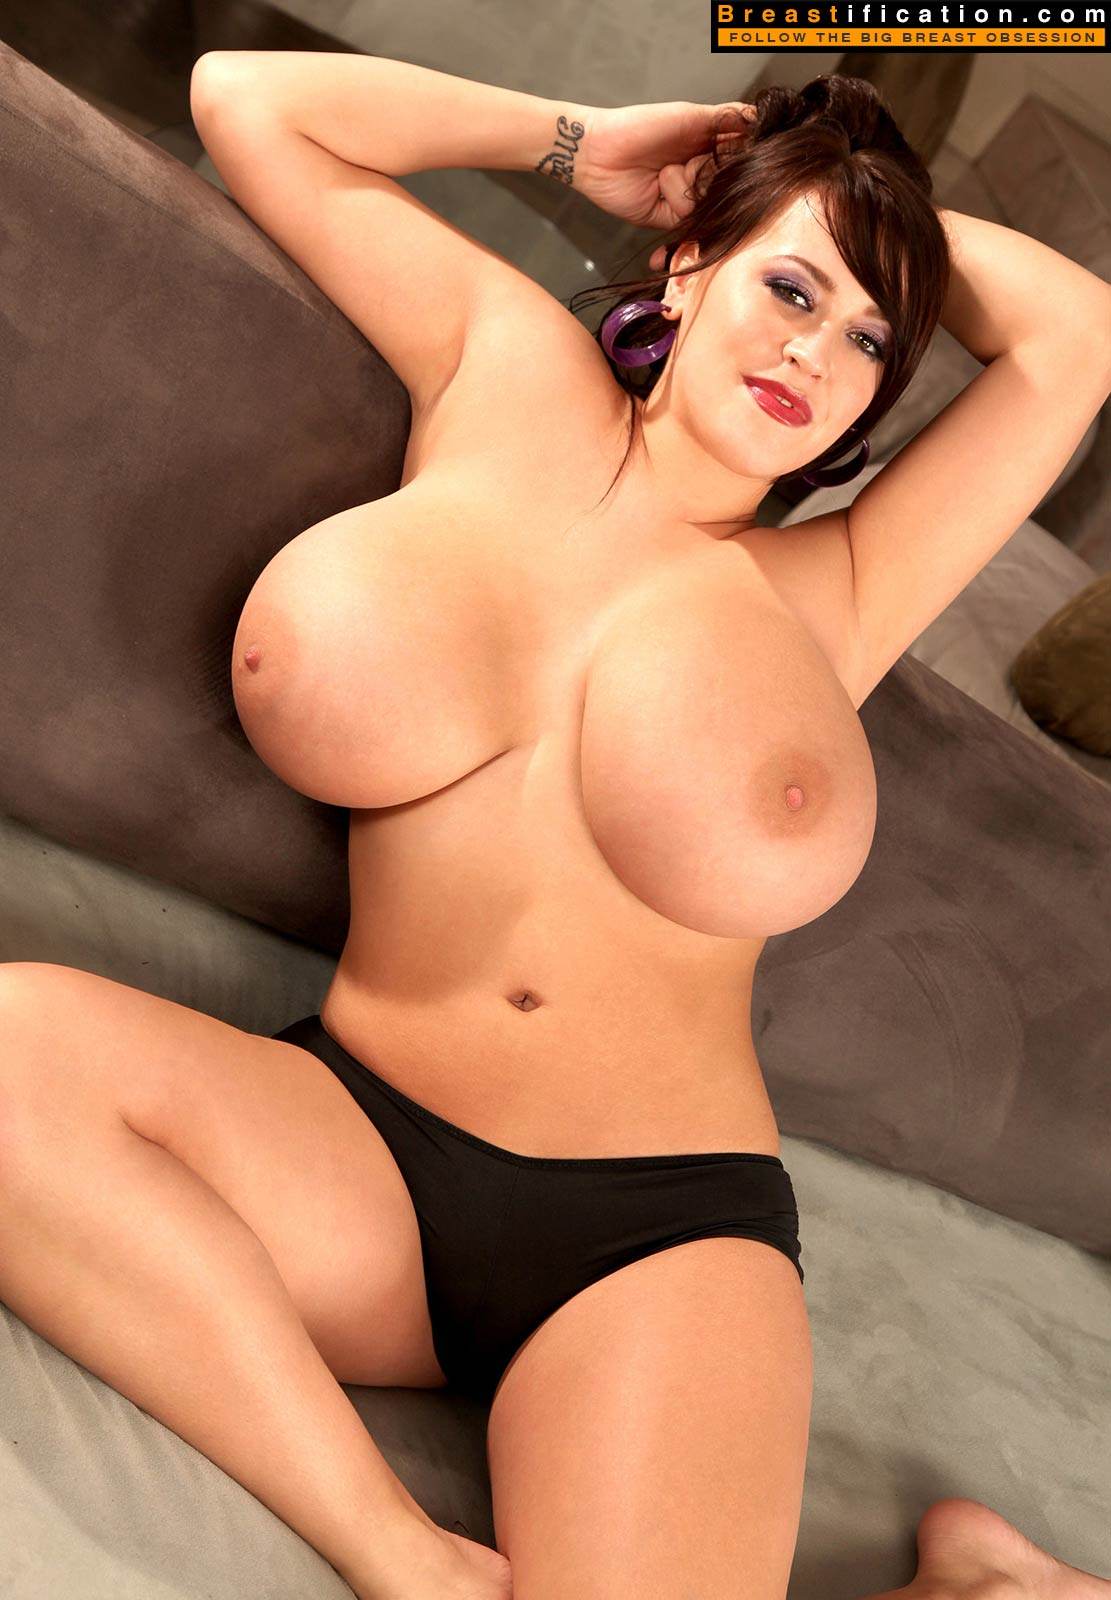 Big tits seduction